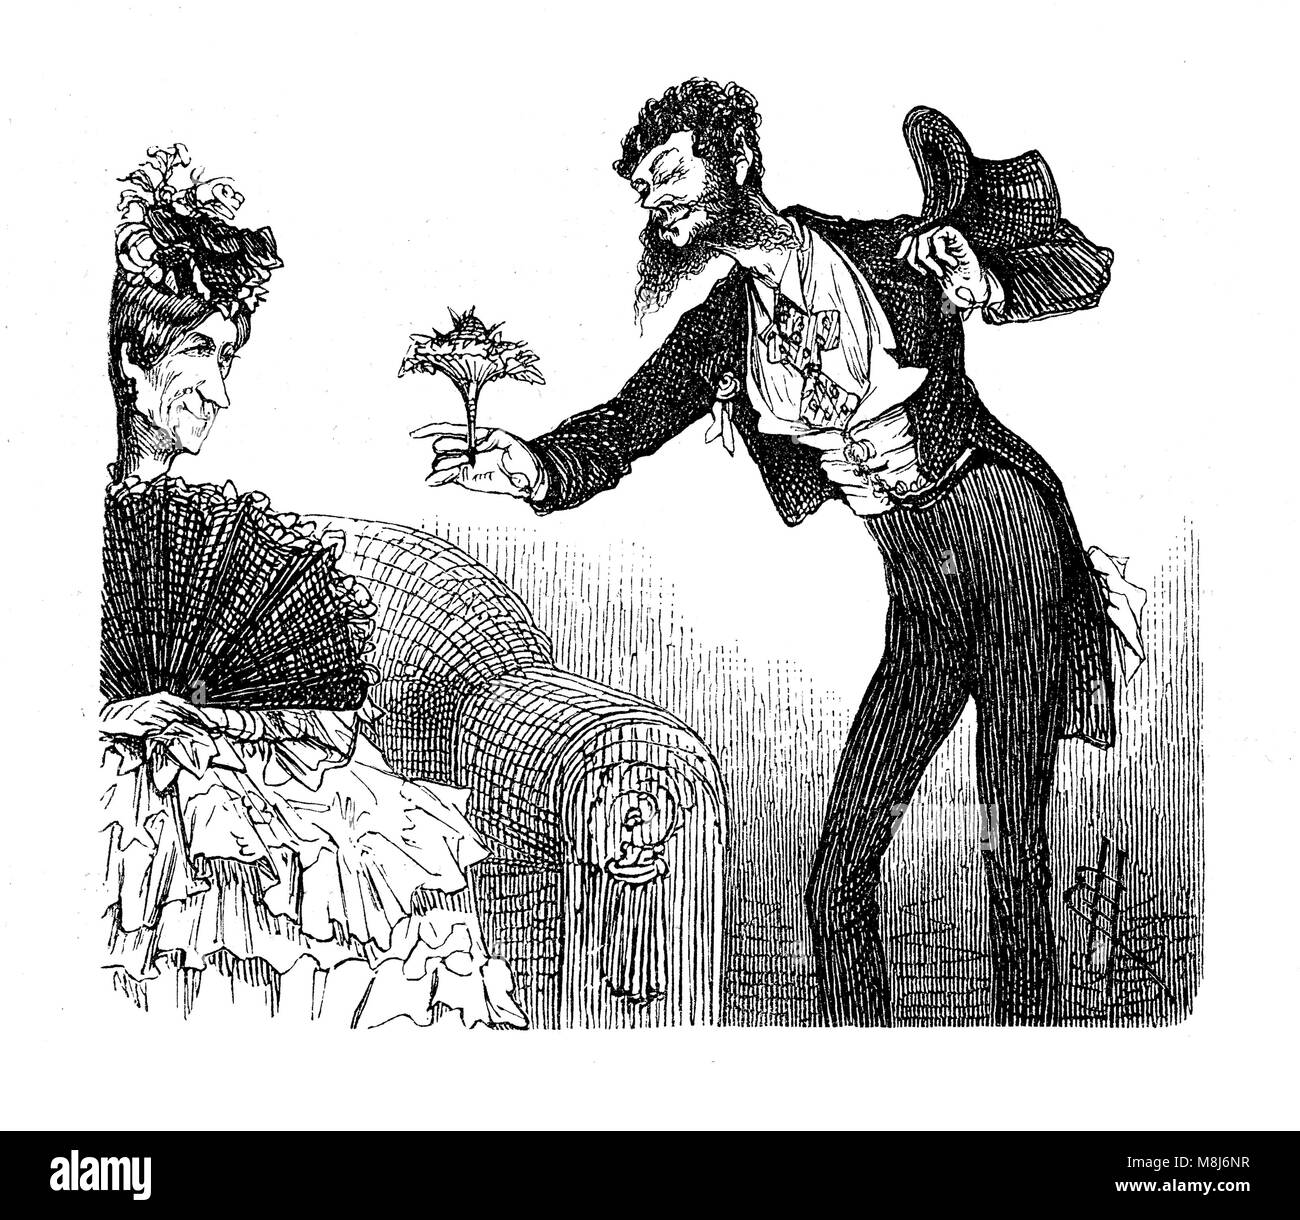 Vintage caricatures and fun: weird gentleman courting an old spinster offering a bouquet of flowers - Stock Image